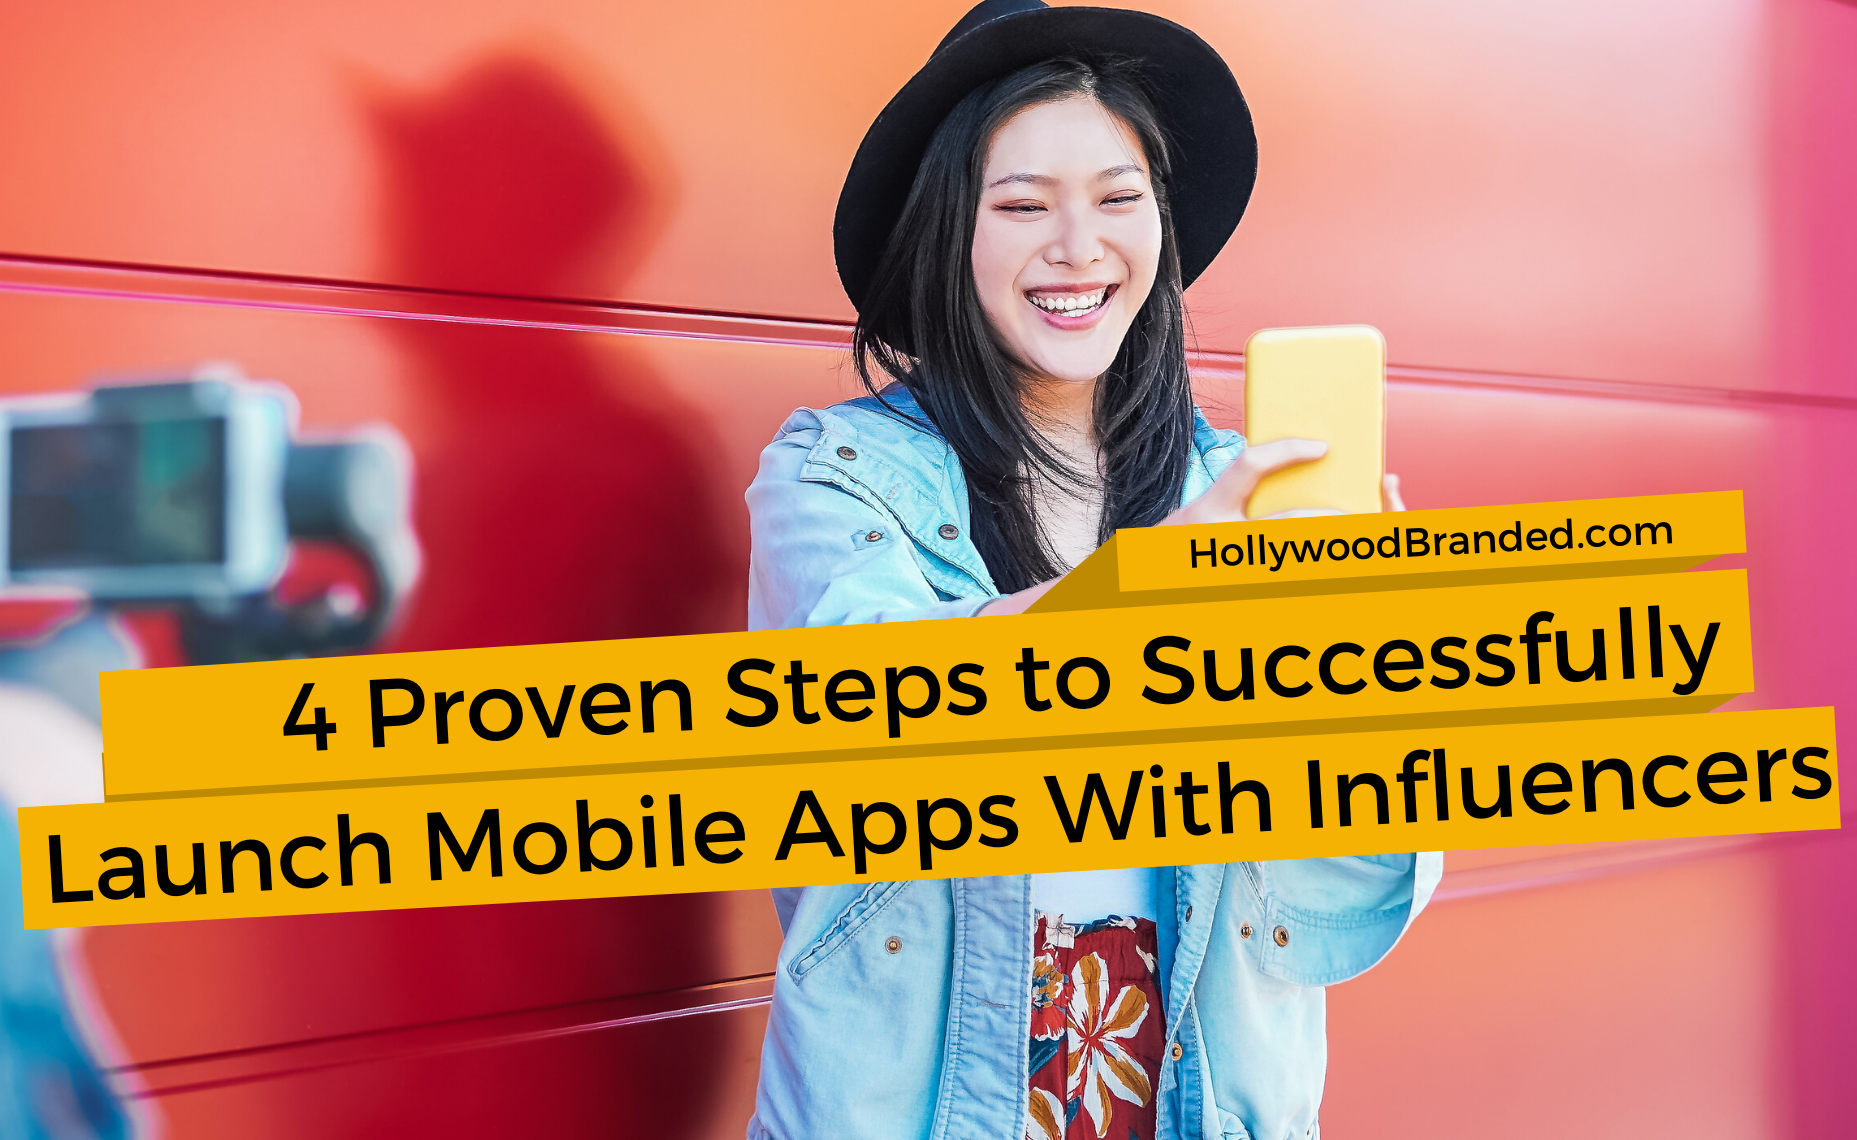 4 Proven Steps to Successfully Launch Mobile Apps Using Influencers